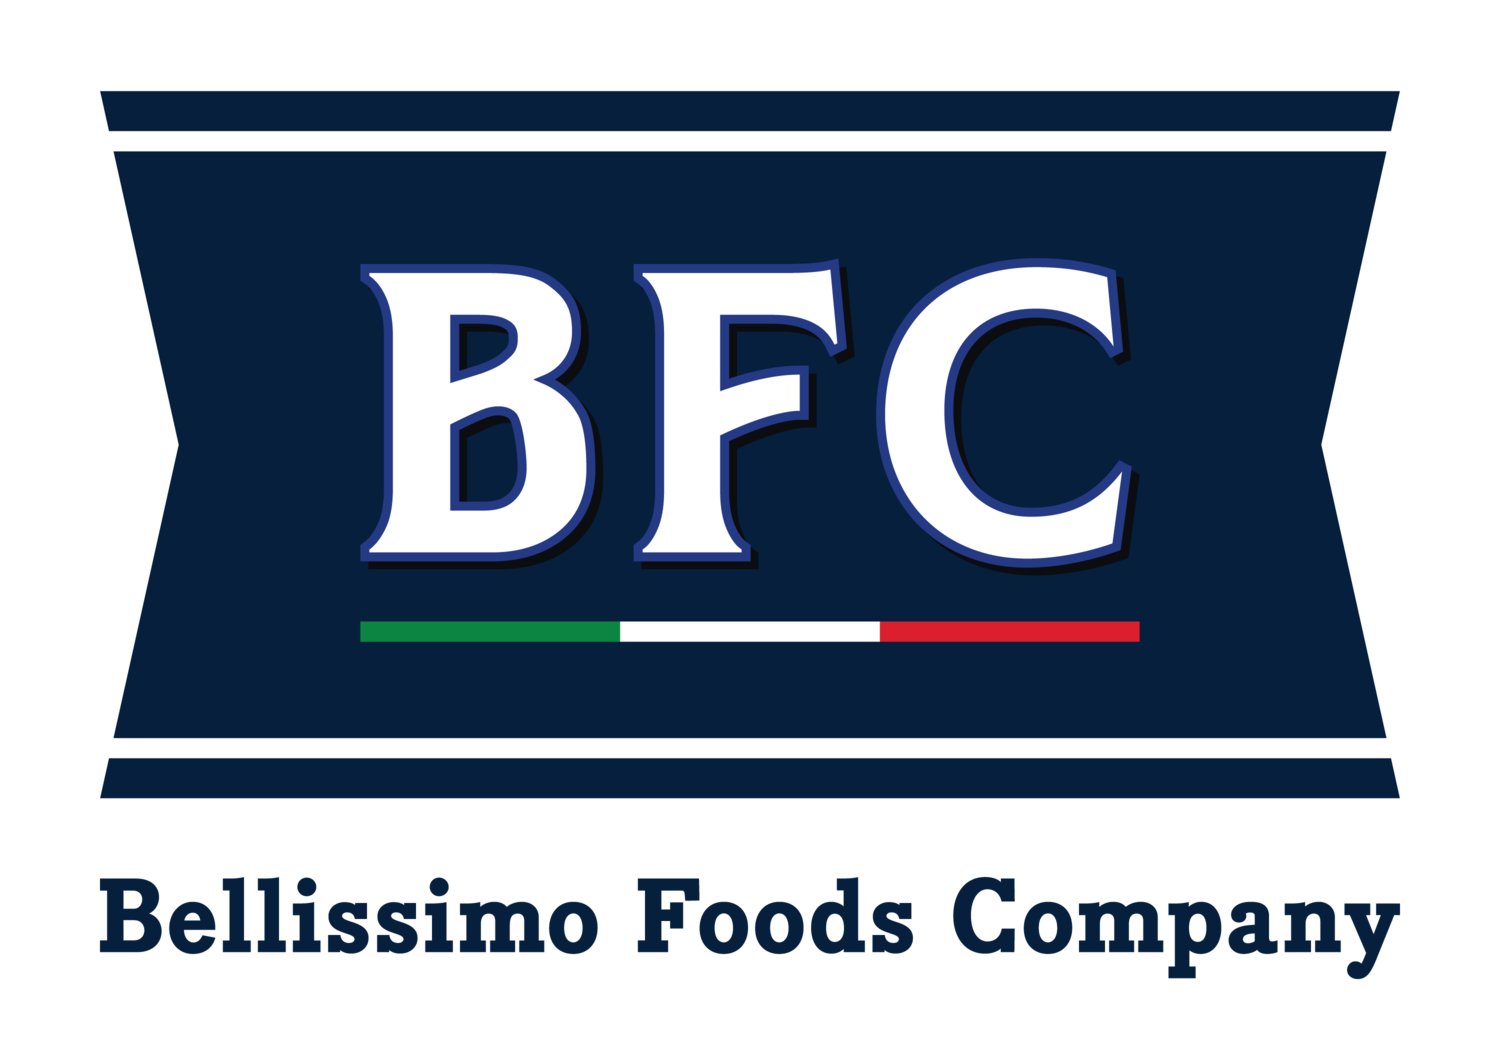 Bellissimo Foods Company